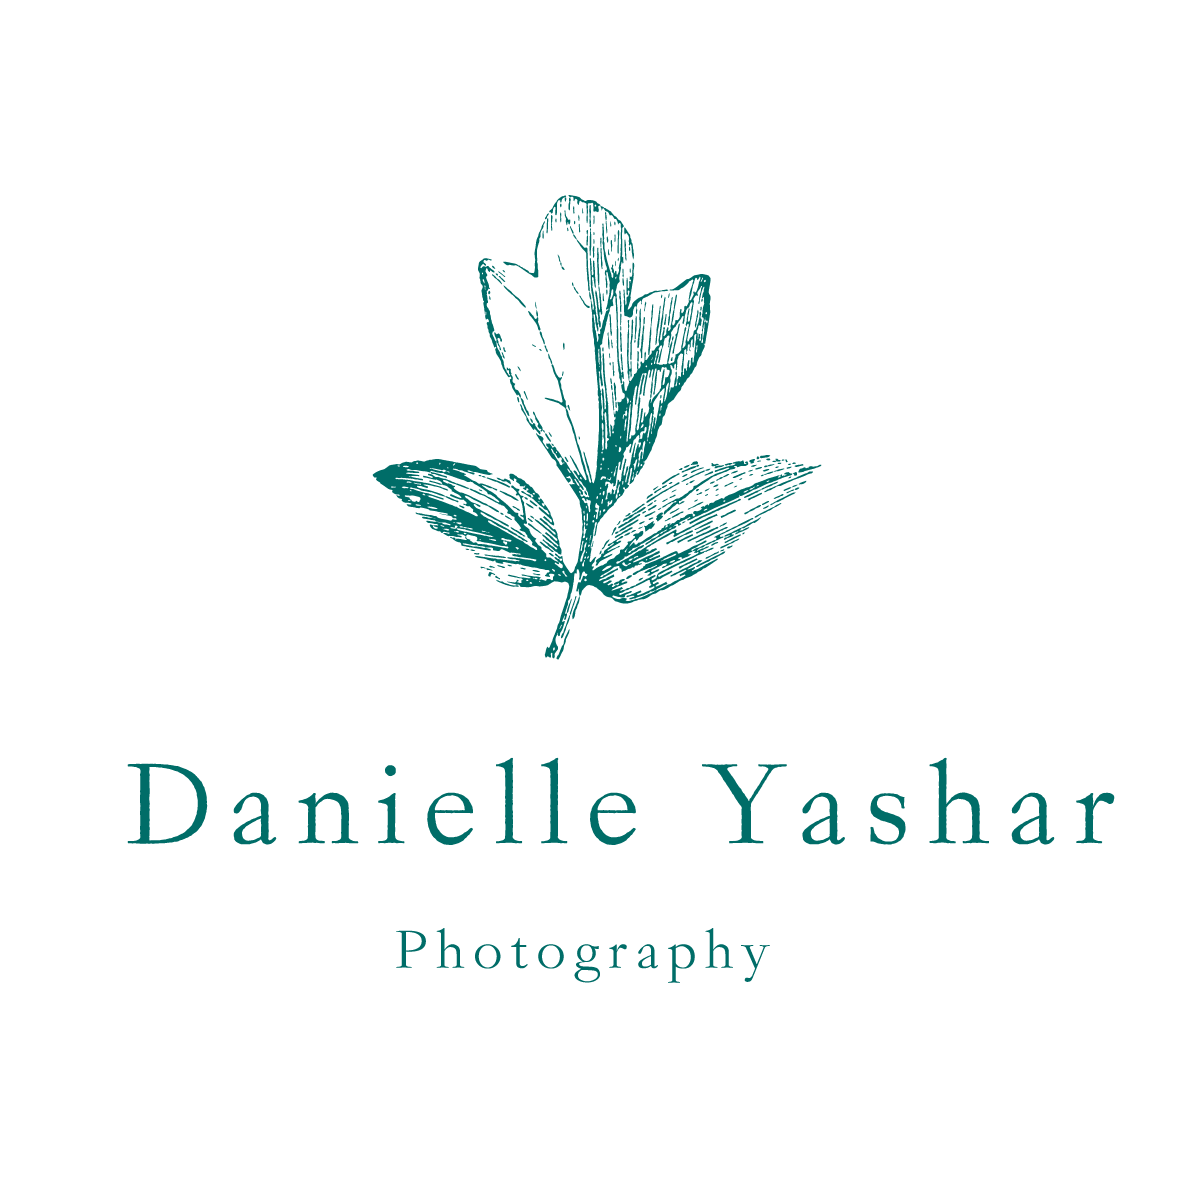 Danielle Yashar Photography